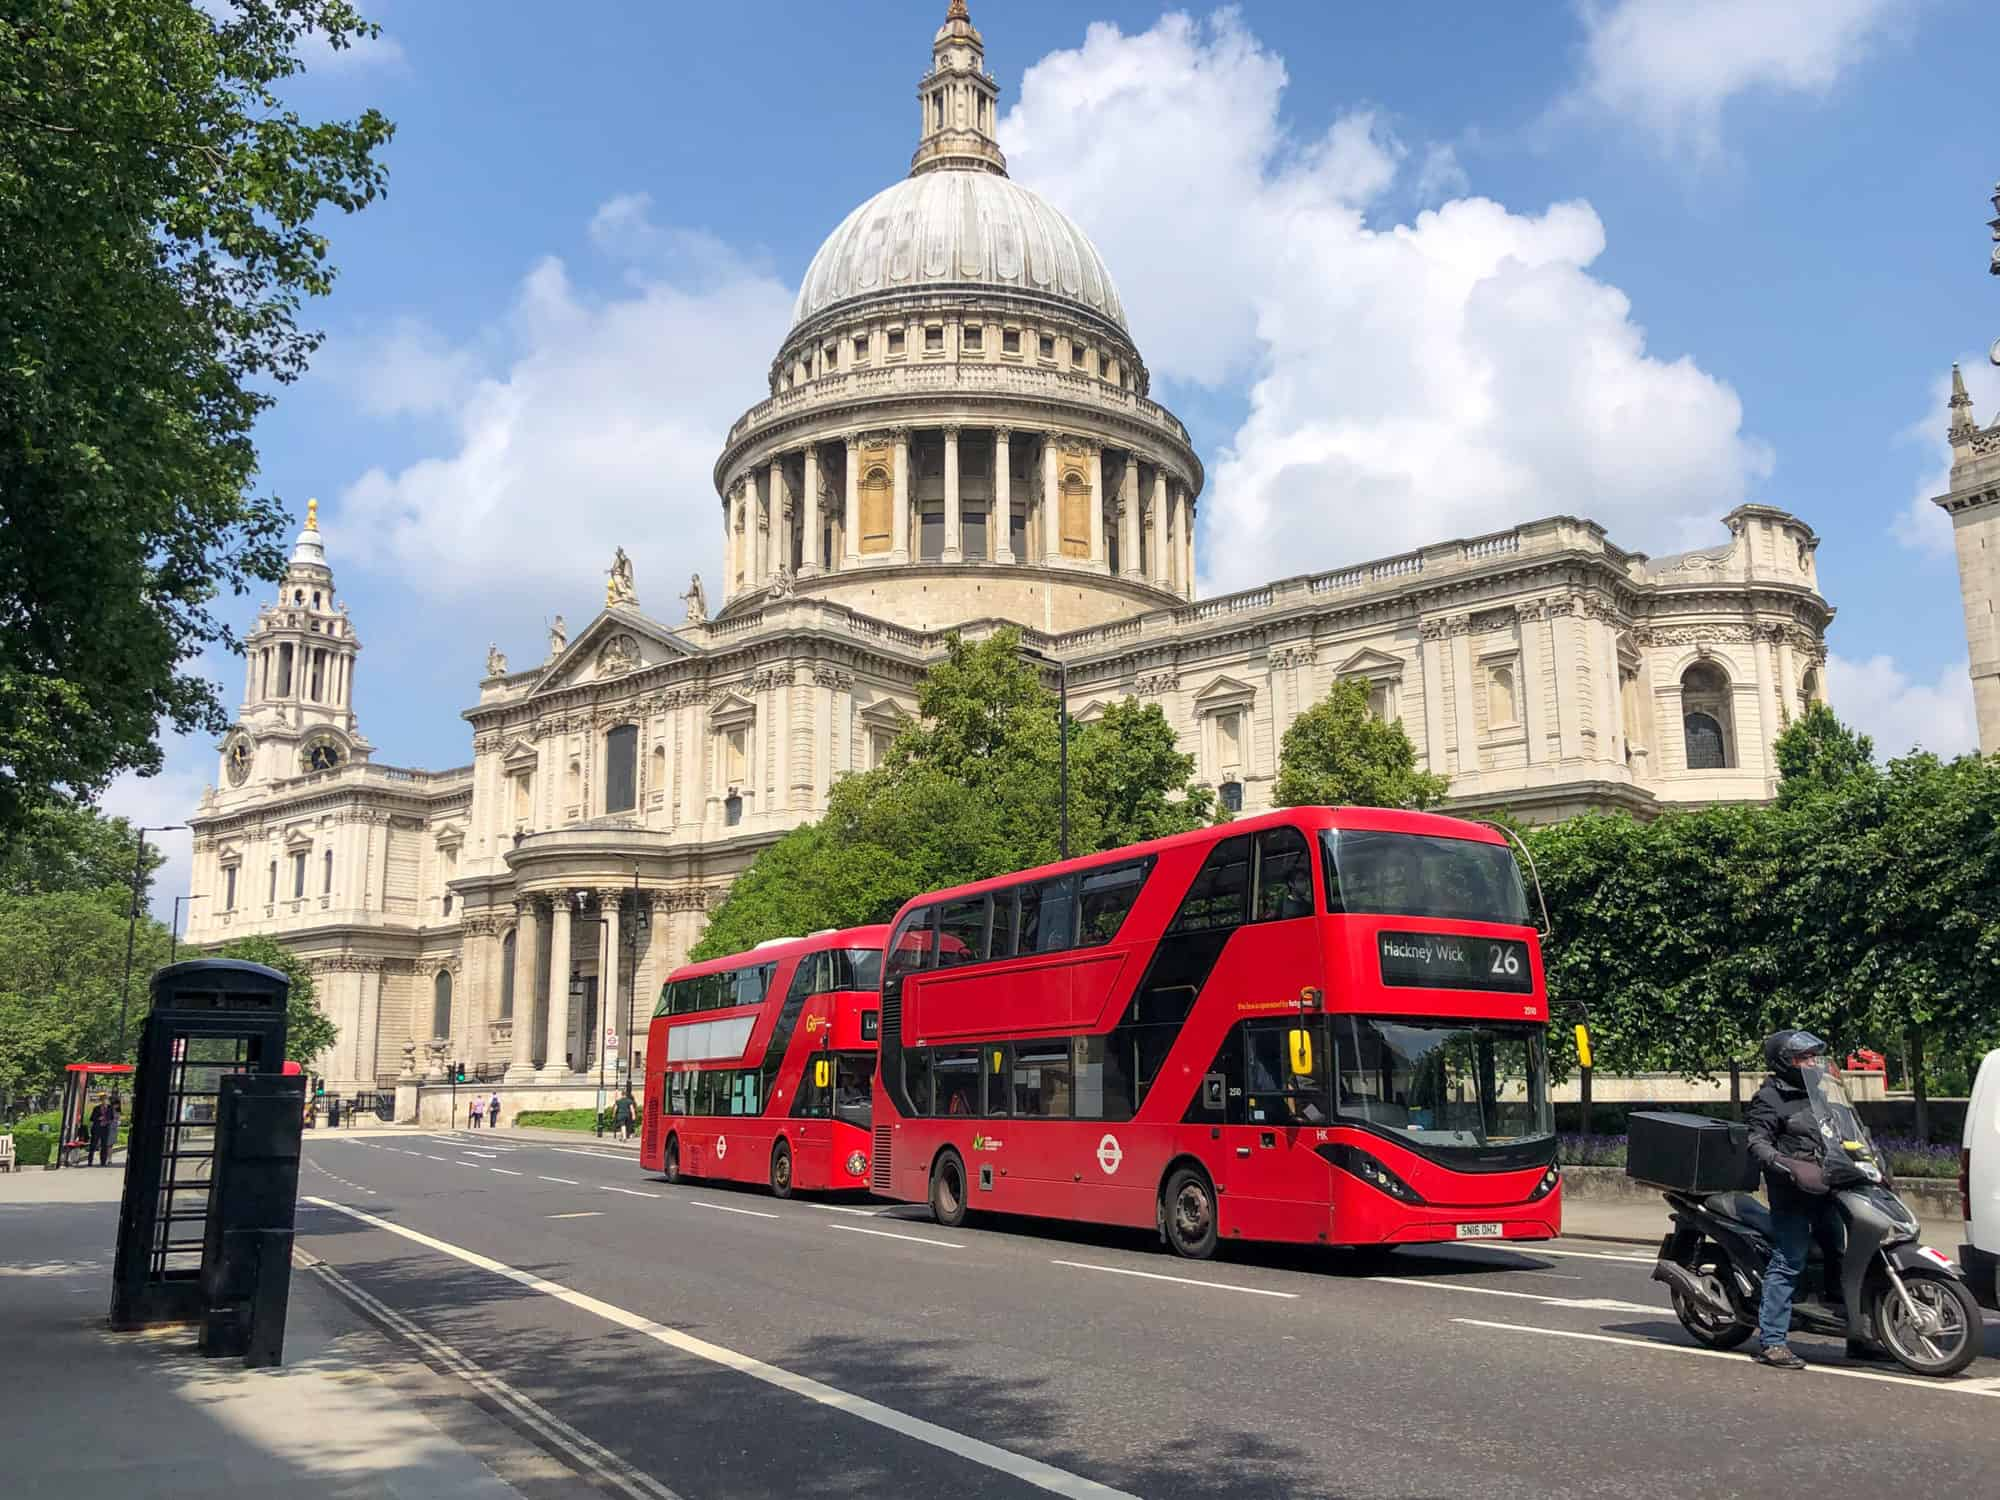 UK - England - St Paul's and Red Bus